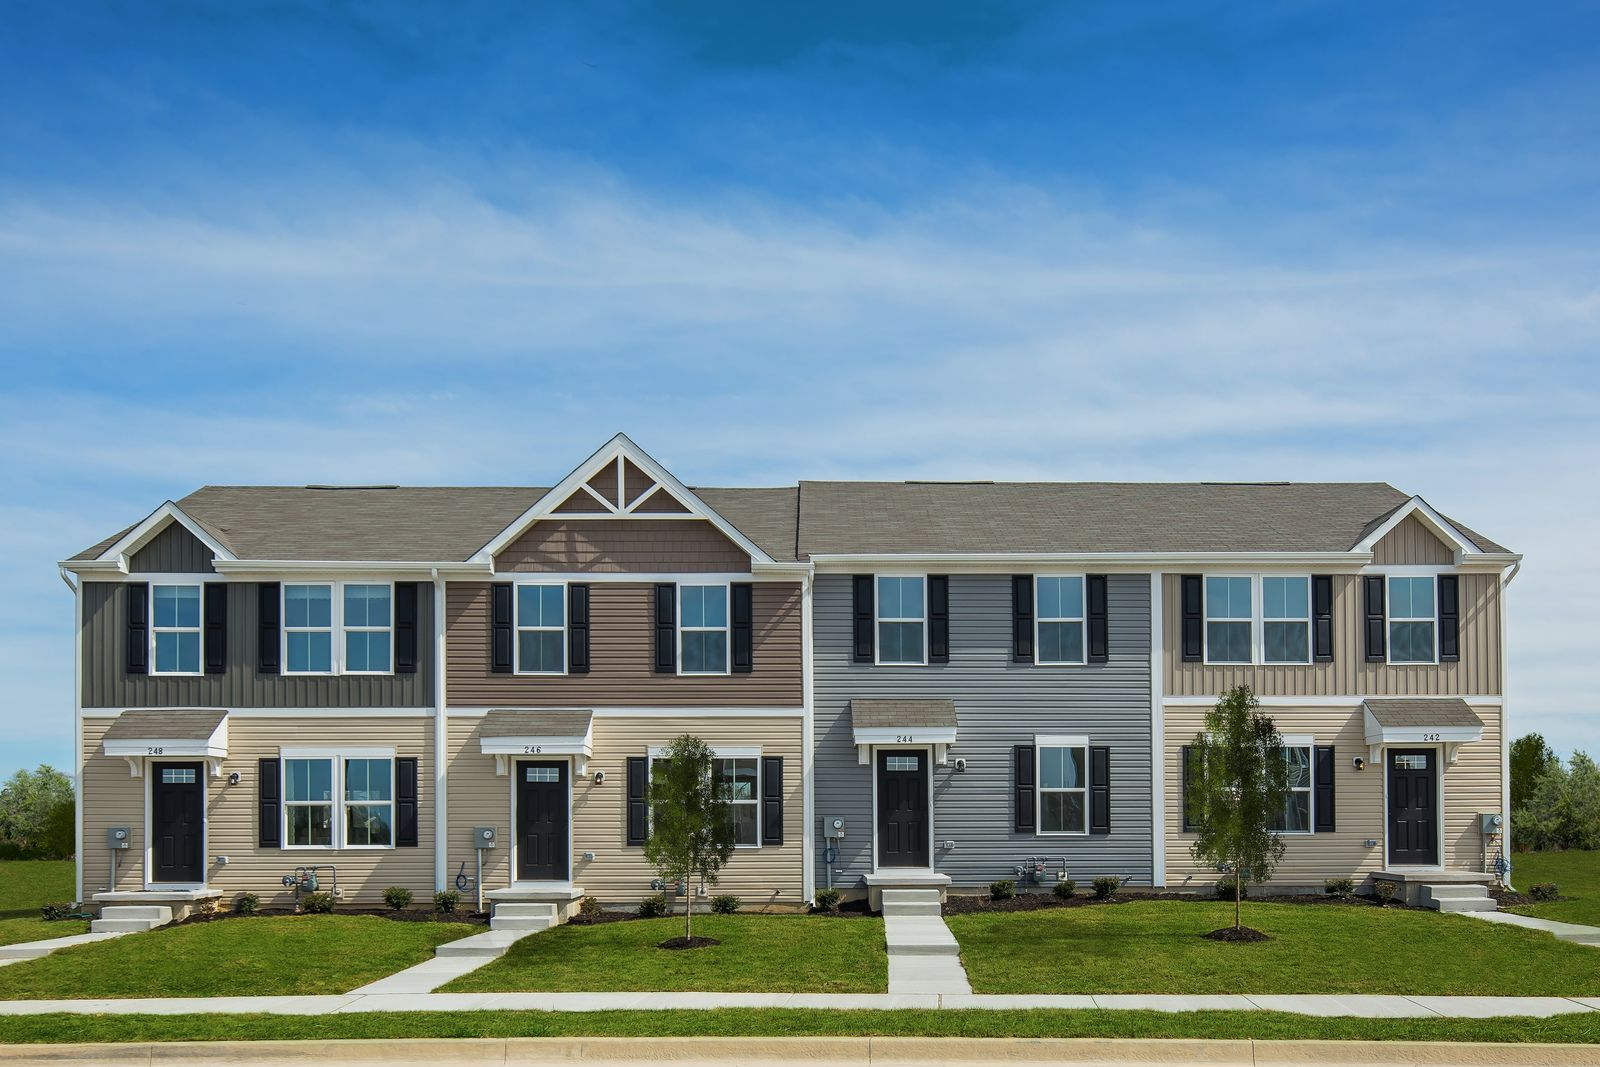 THORNTON GROVE TOWNHOMES - NOW OPEN:Finally own for the same or less than what you're paying in rent! Brand new, low-maintenance townhomes only 8 miles to downtown Nashville from themid $200s.Schedule a visit today!